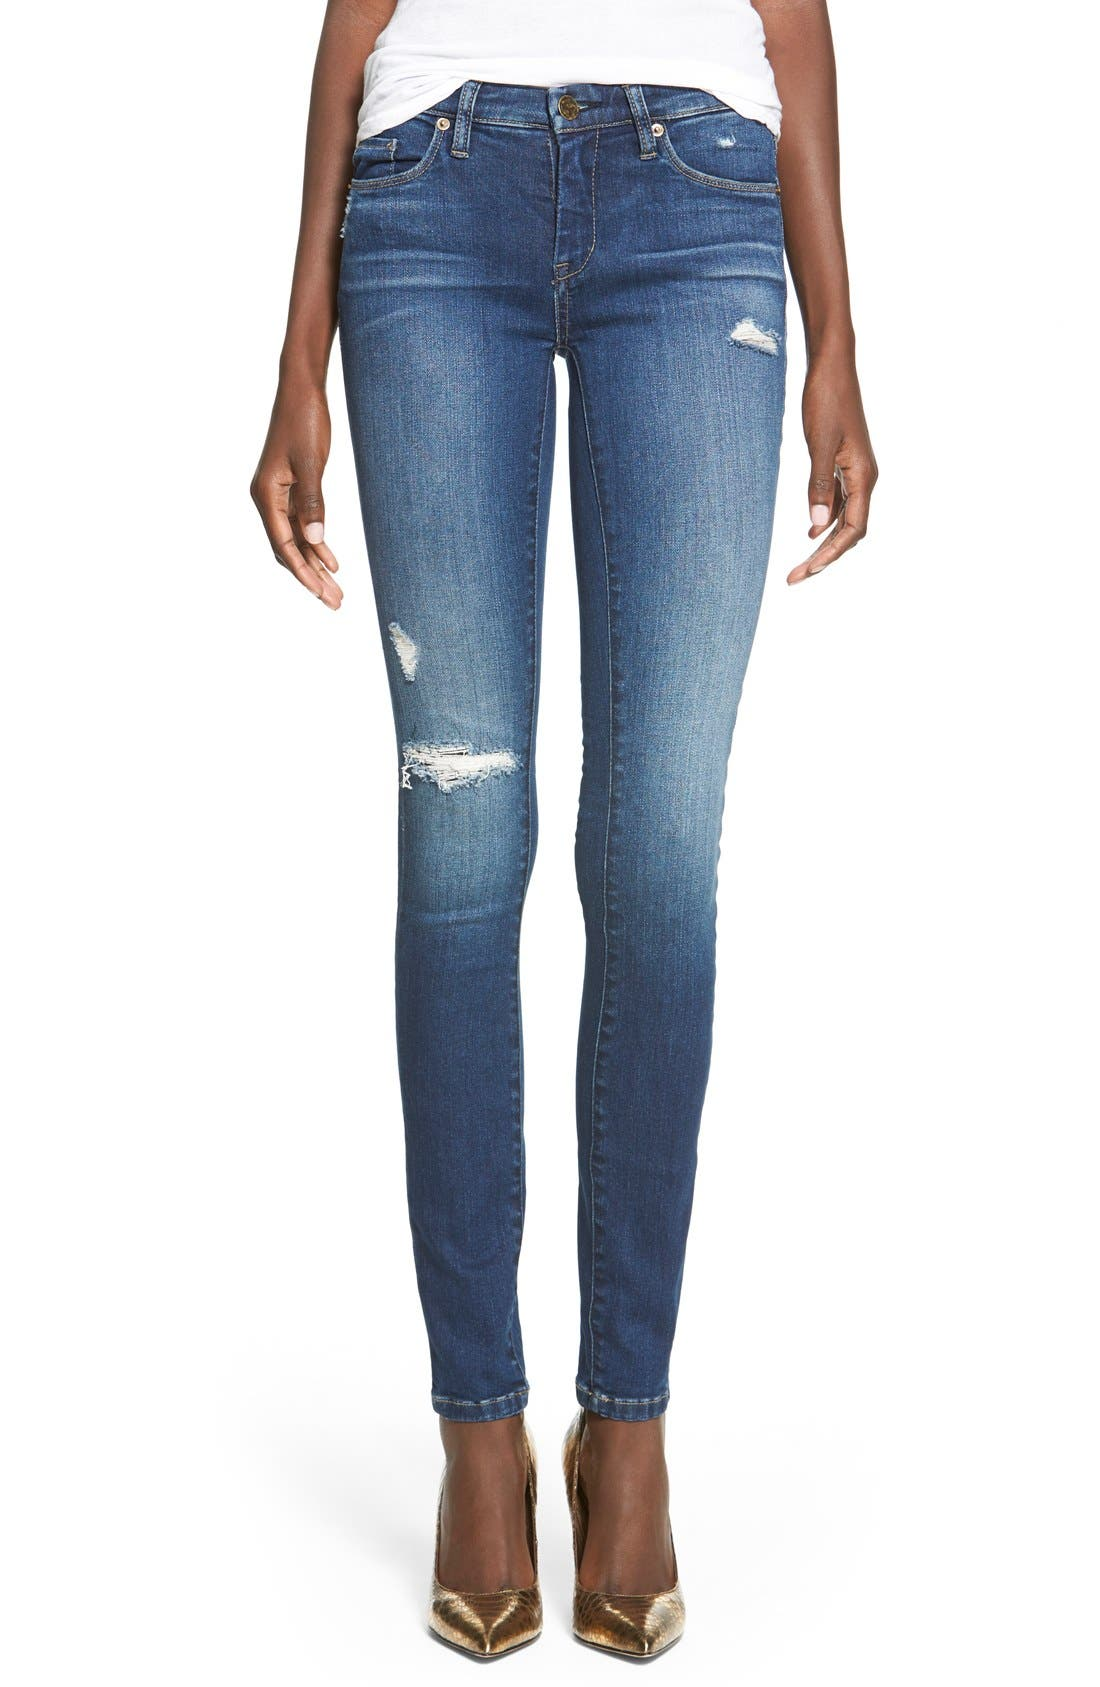 Alternate Image 1 Selected - BLANKNYC 'Hotel' Distressed Skinny Jeans (Blue)